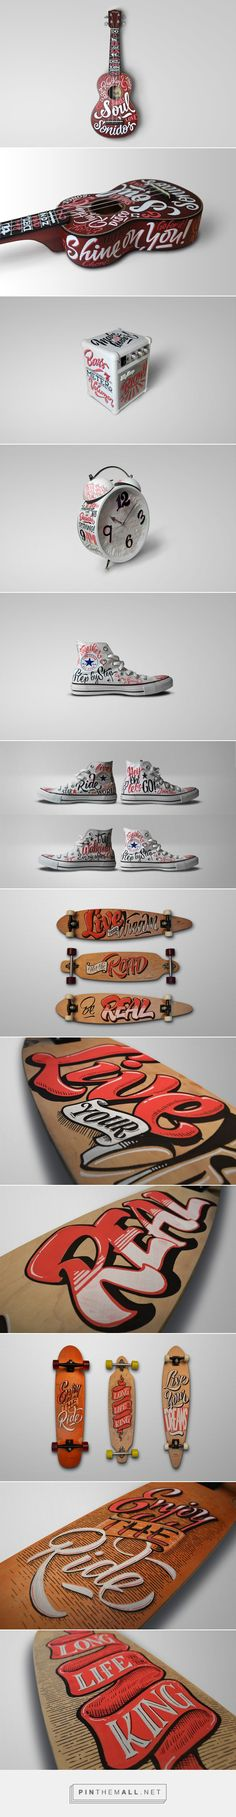 Lettering sobre objetos on Behance. - a grouped images picture - Pin Them All Cool Typography, Typography Quotes, Typography Inspiration, Graphic Design Typography, Lettering Design, Graphic Design Inspiration, Types Of Lettering, Brush Lettering, Calligraphy Letters